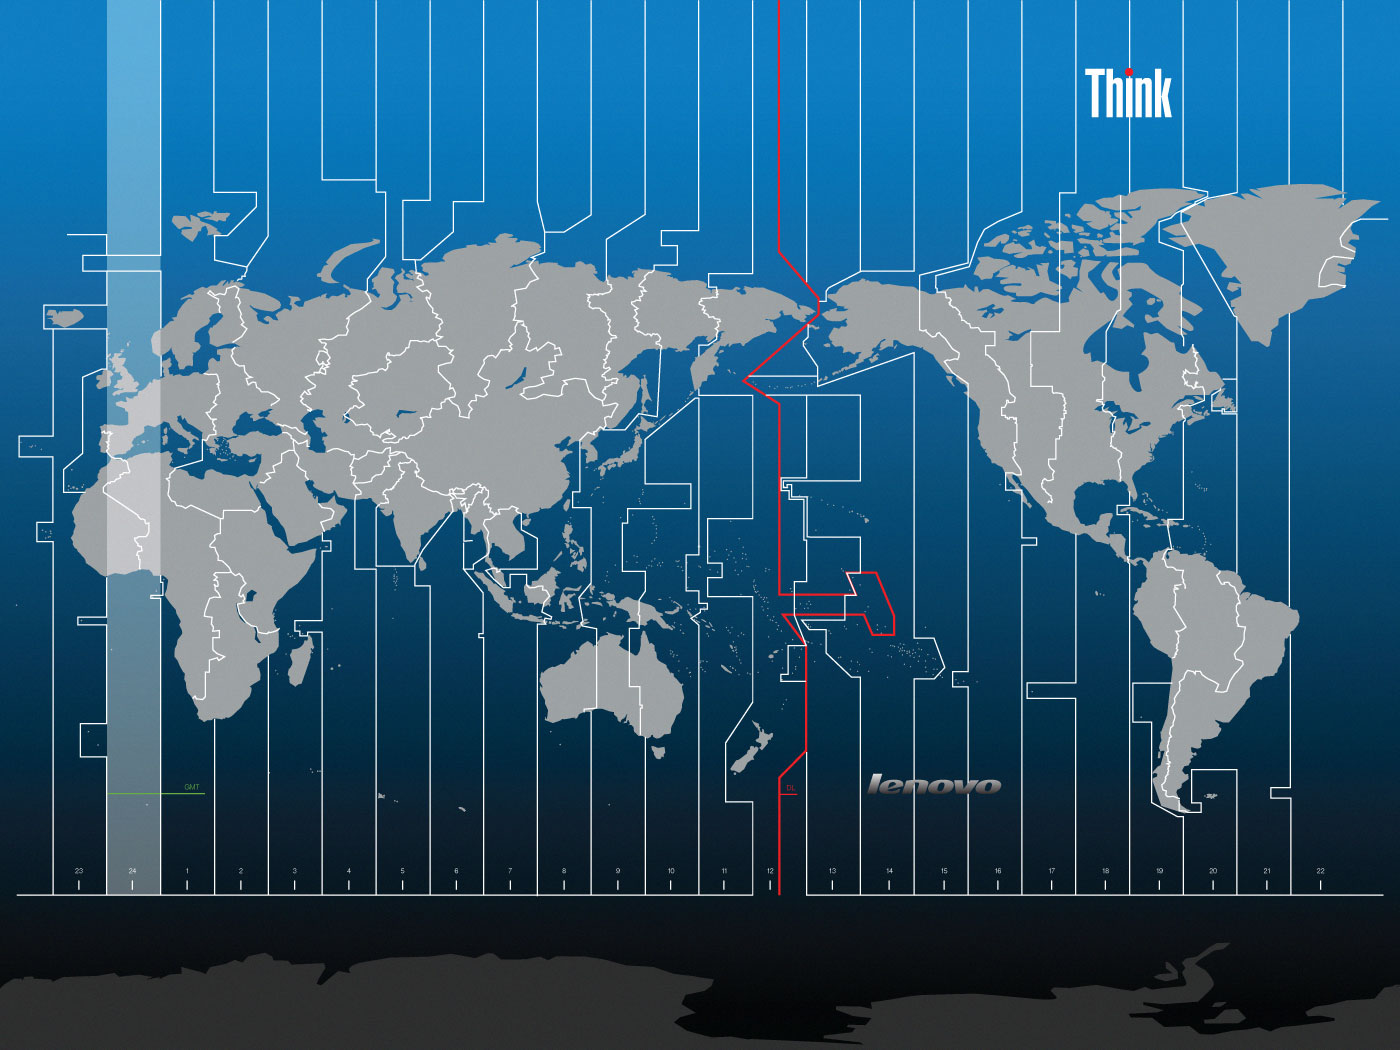 World Time Zone Graphic Pictures To Pin On Pinterest PinsDaddy - World map time zones now